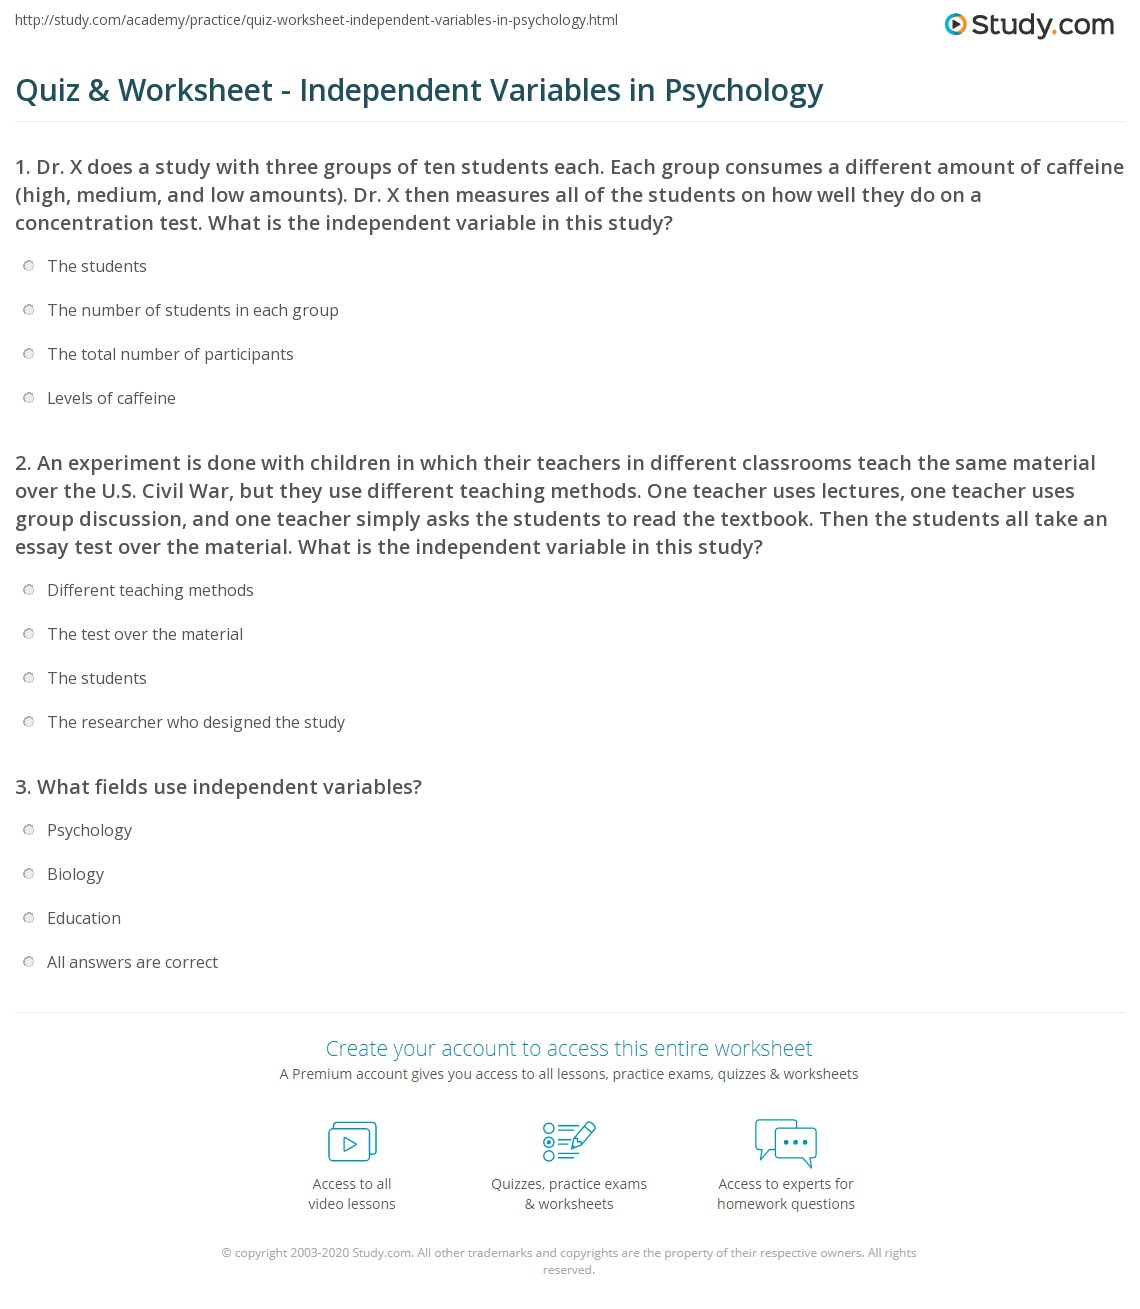 Printables High School Psychology Worksheets quiz worksheet independent variables in psychology study com 1 an experiment is done with children which their teachers different classrooms teach the same material over u s civi